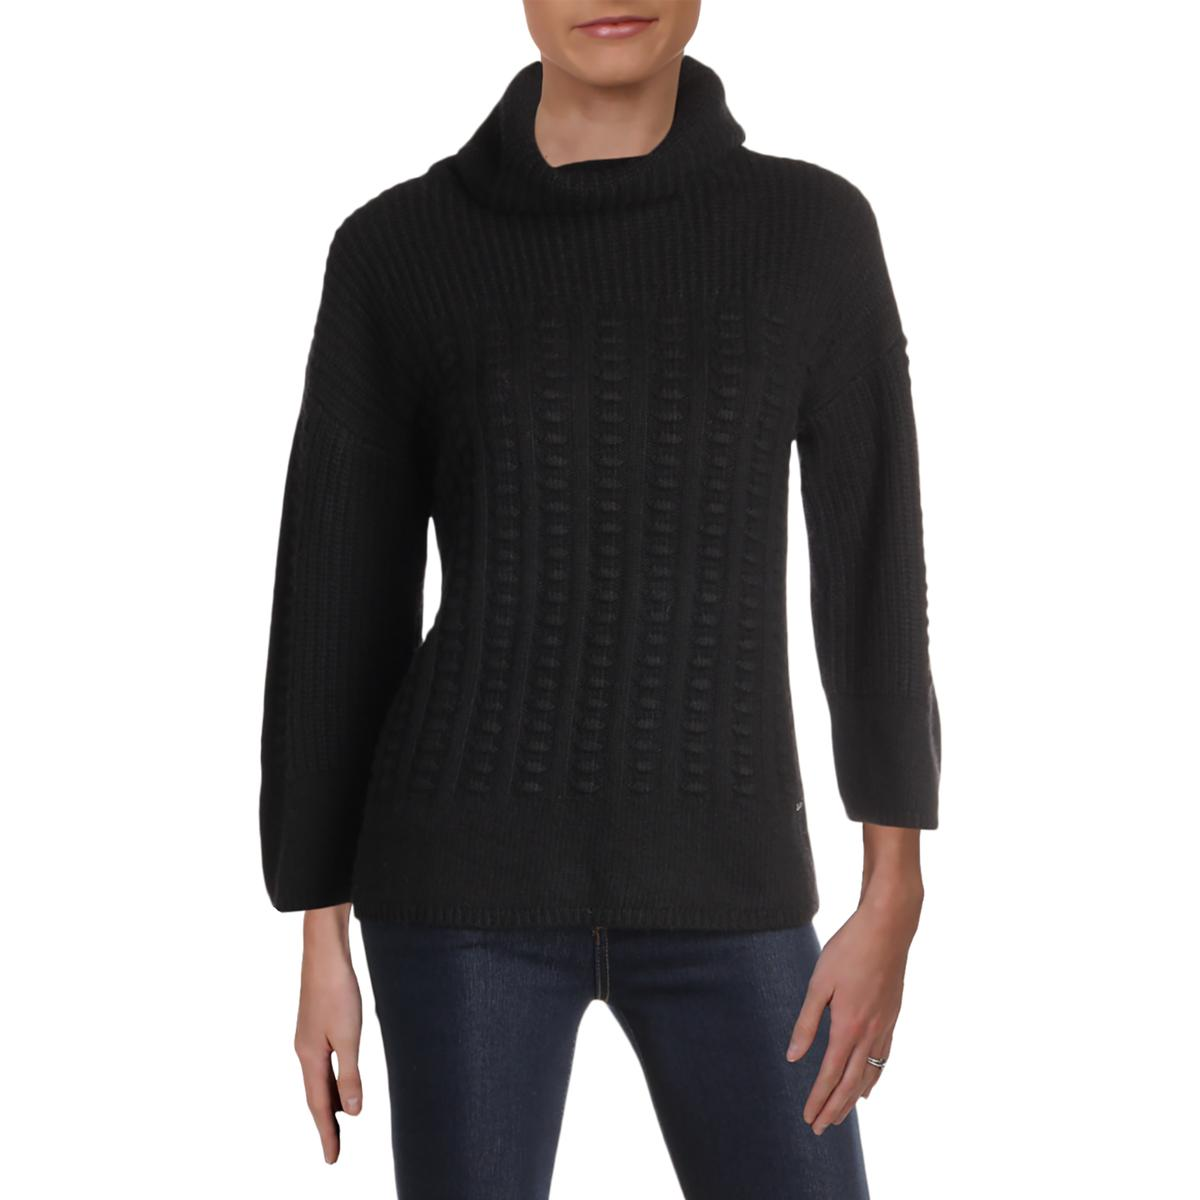 T Tahari Womens Wool Mixed Knit Turtleneck Sweater